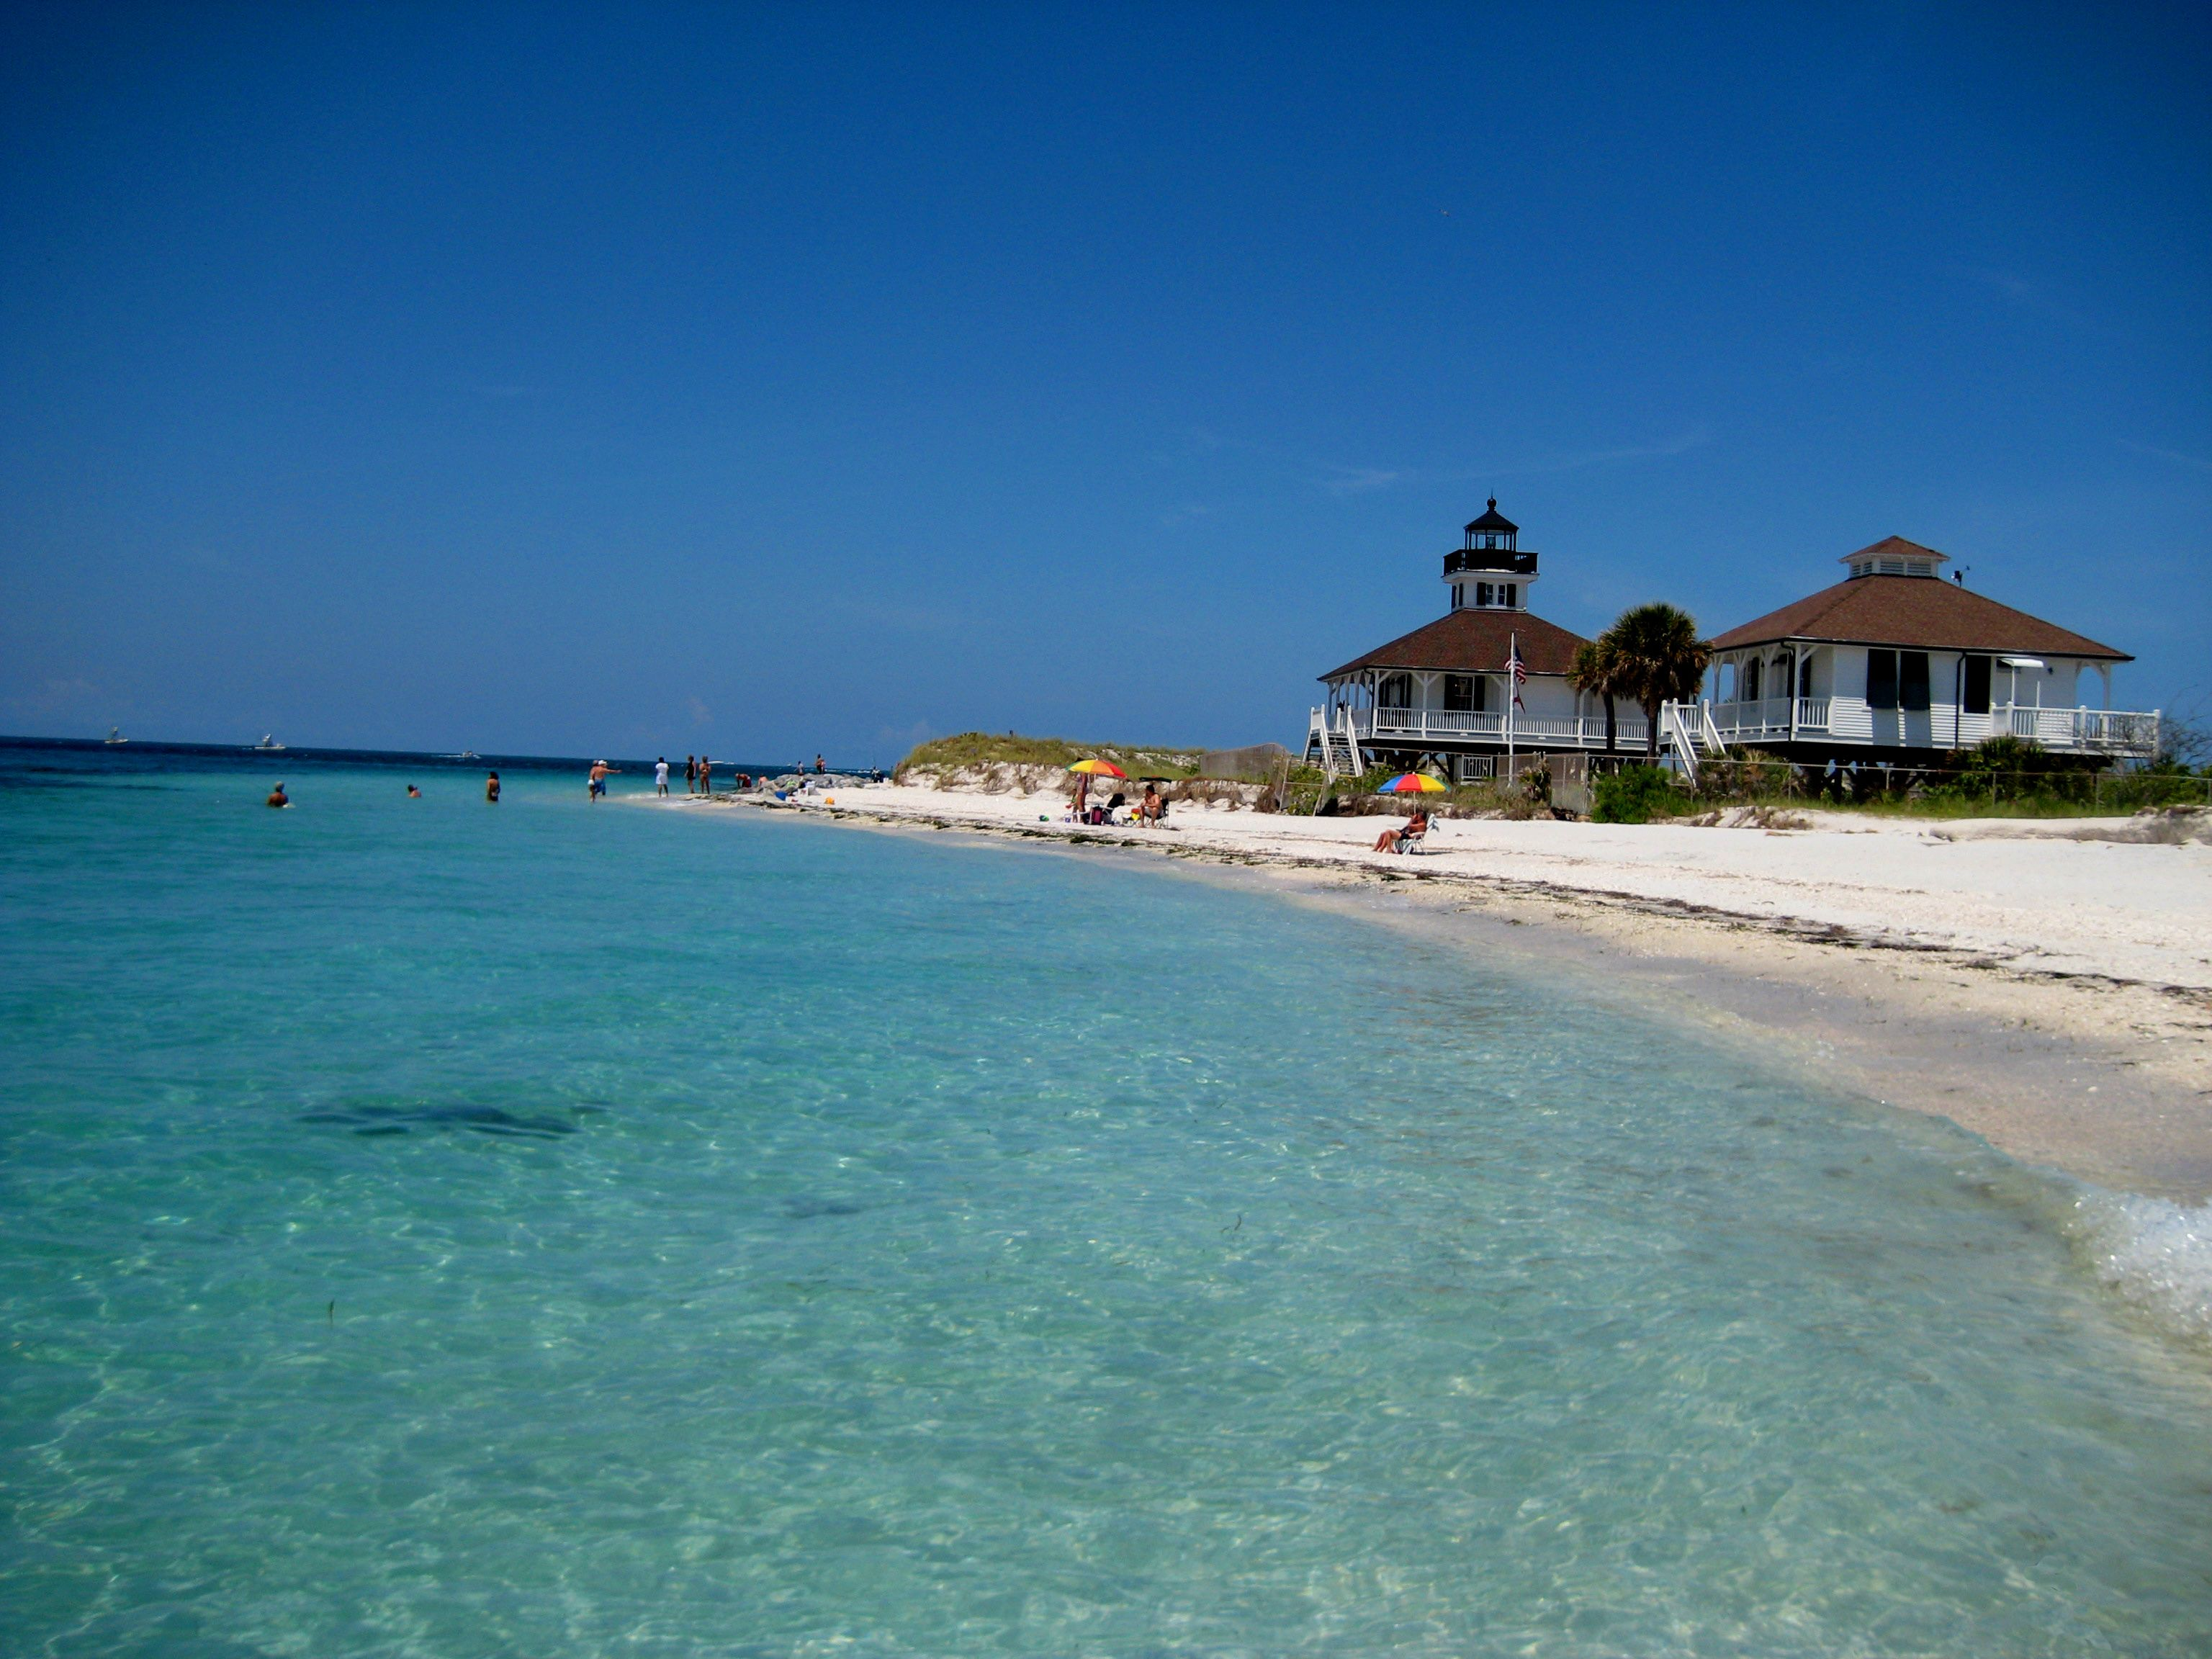 Gasparilla Island Boca Grande Florida I Will Be Laying On That Beach In Less Than A Month